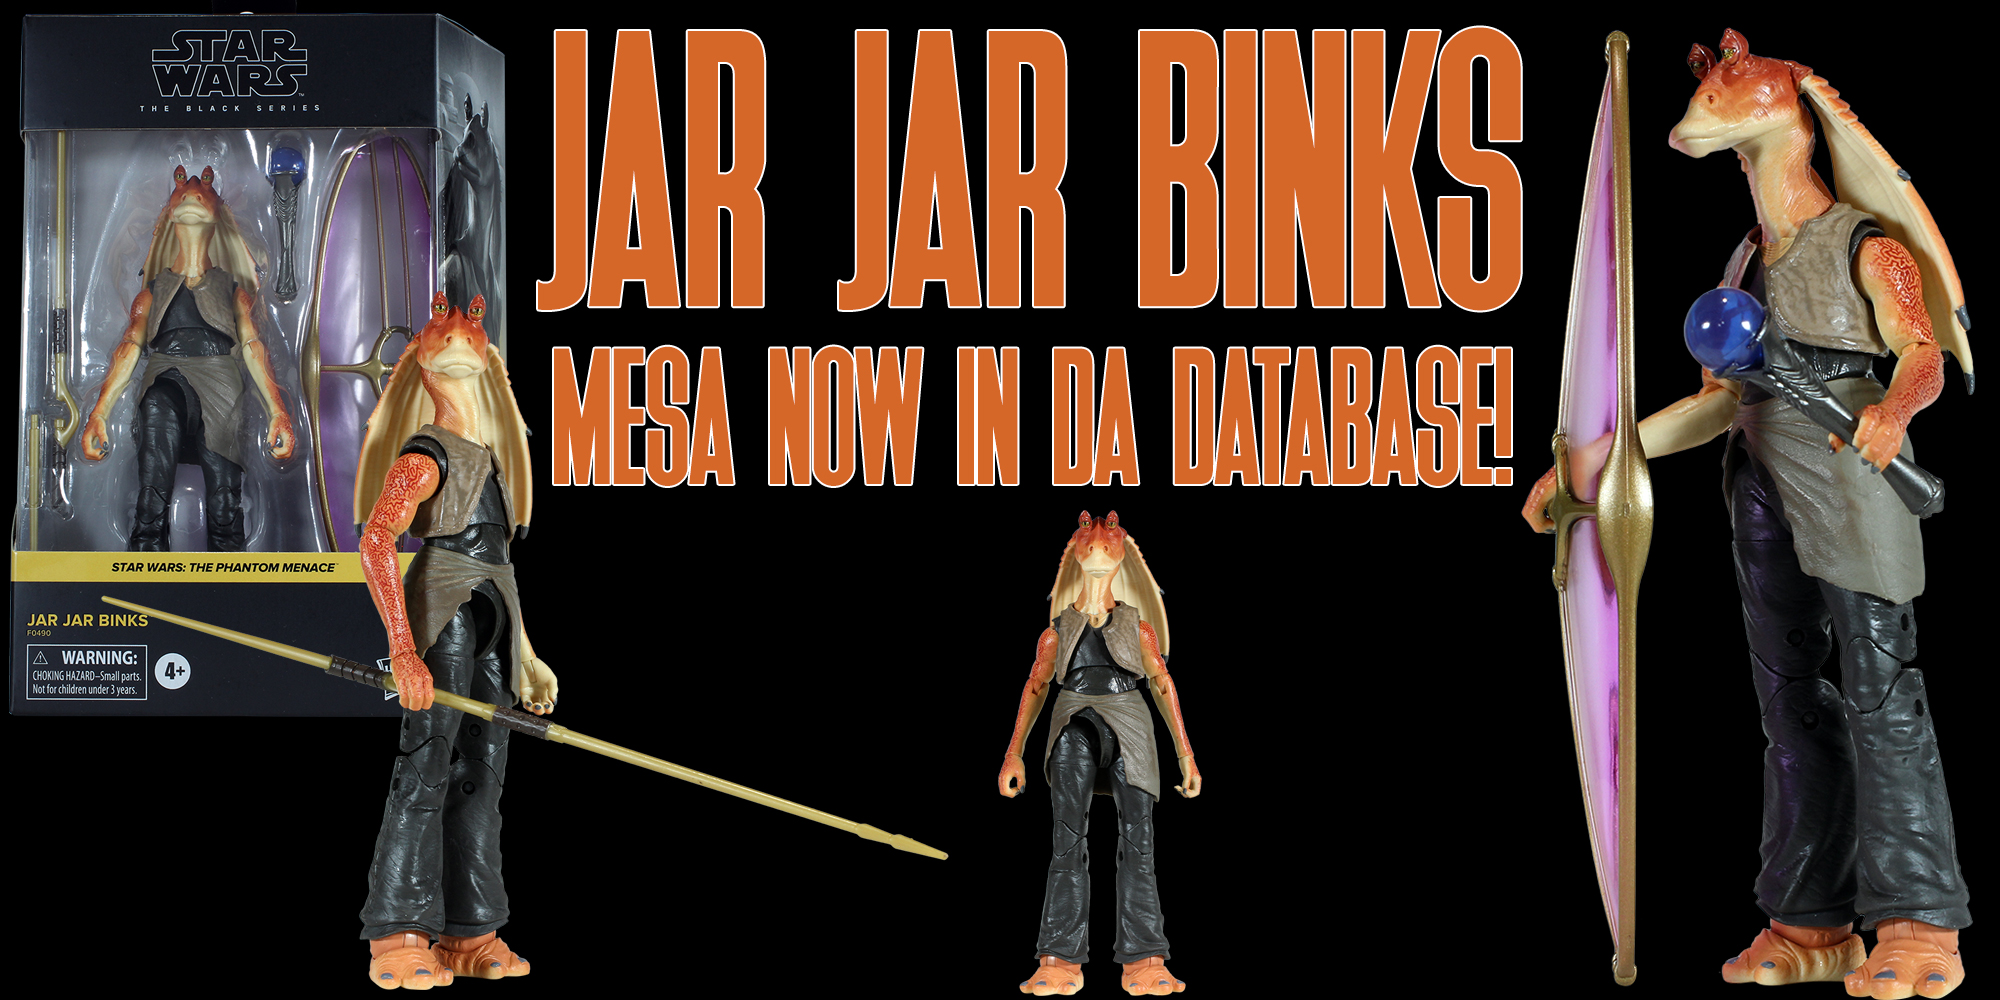 Black Series Jar Jar Binks